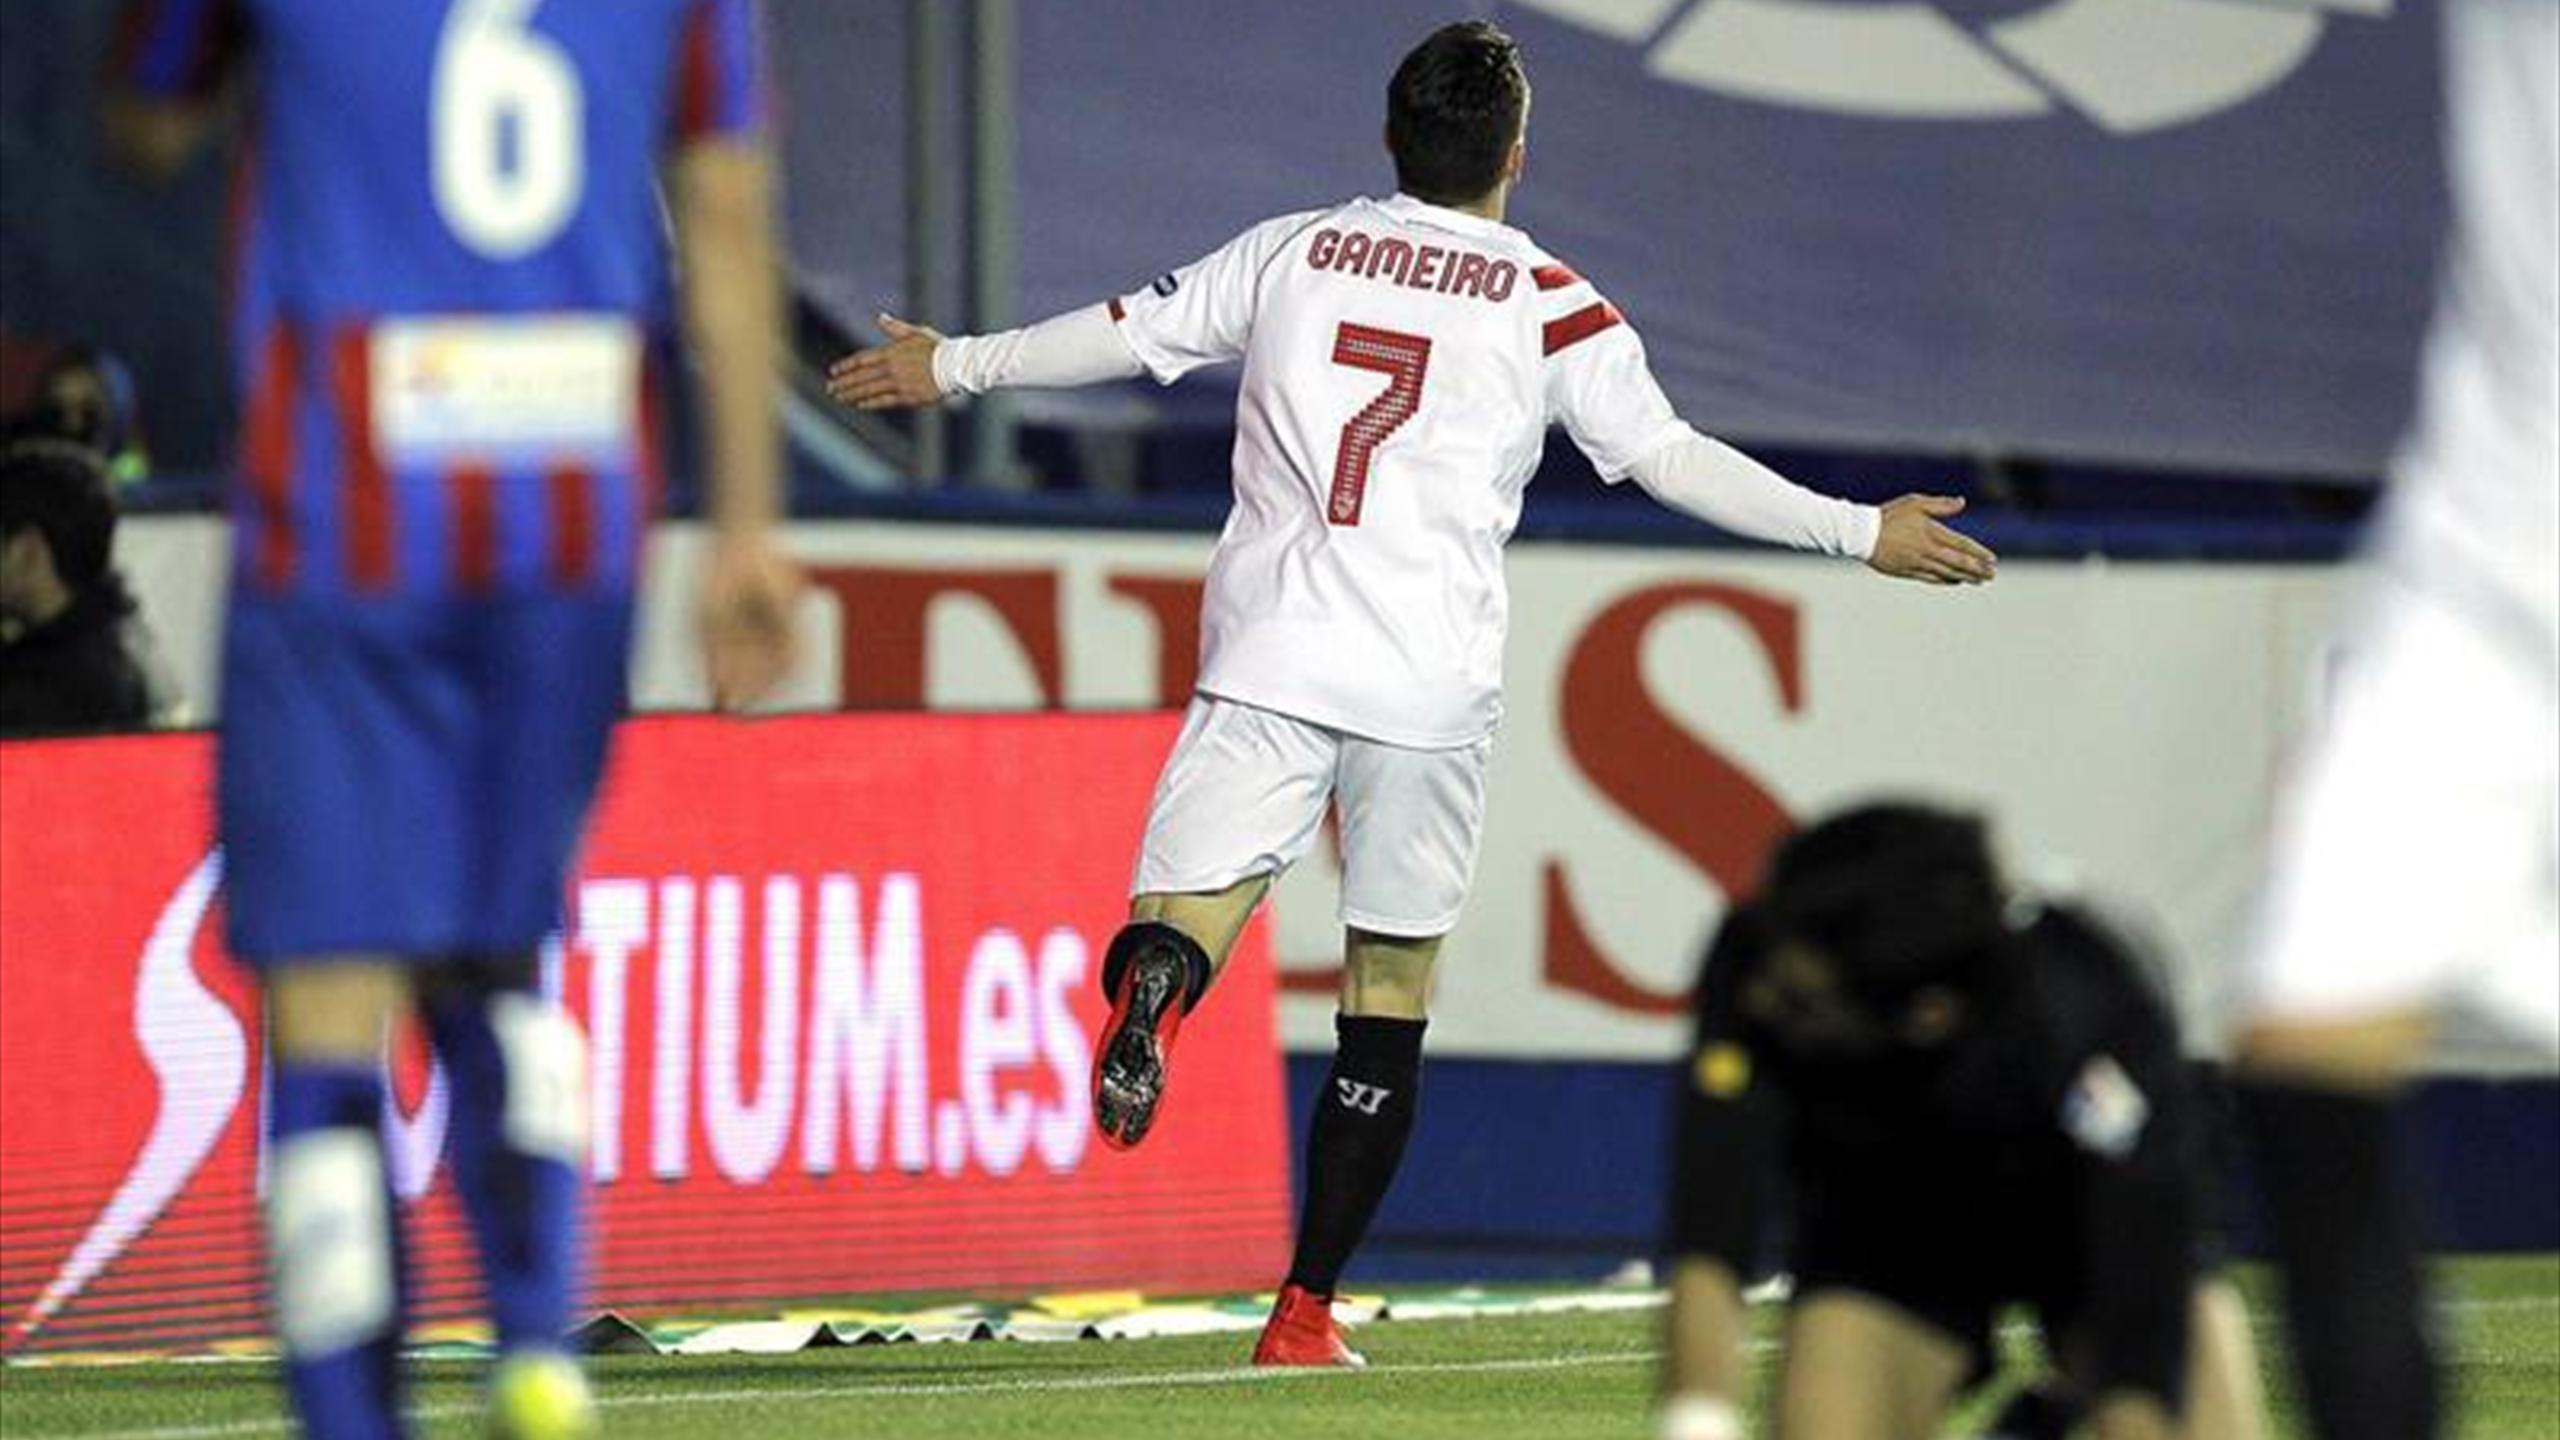 Video: Levante vs Sevilla